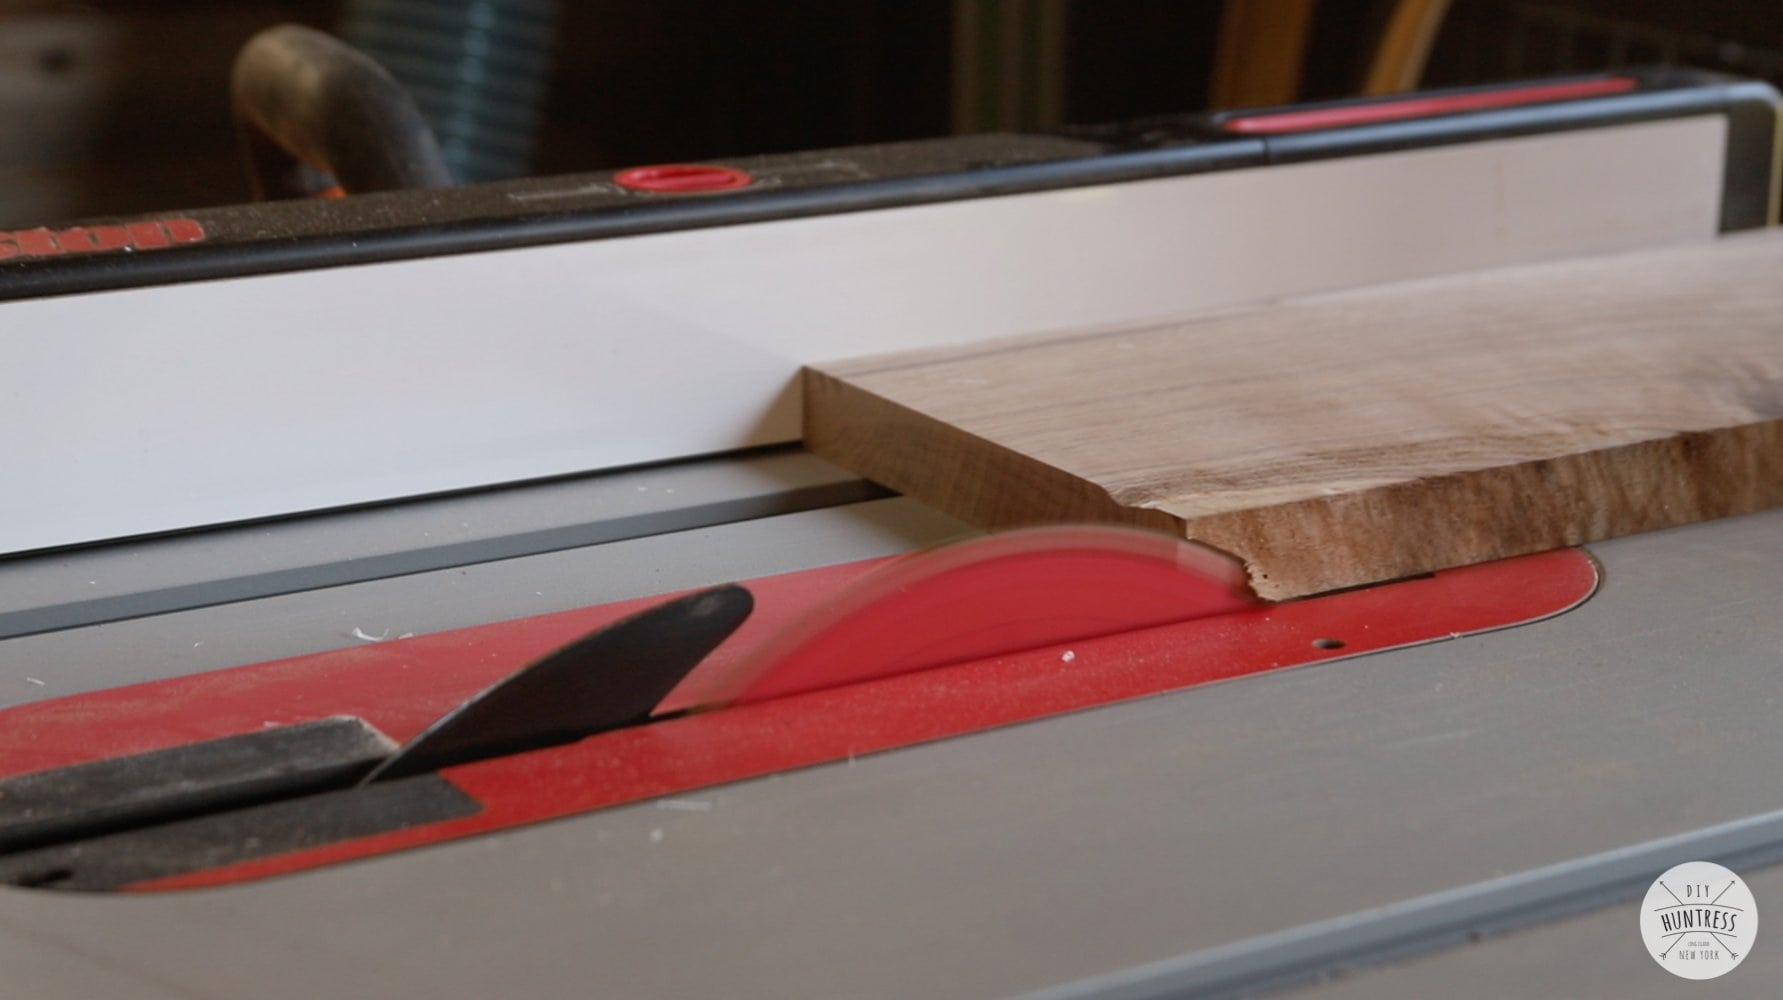 squaring wood without a jointer